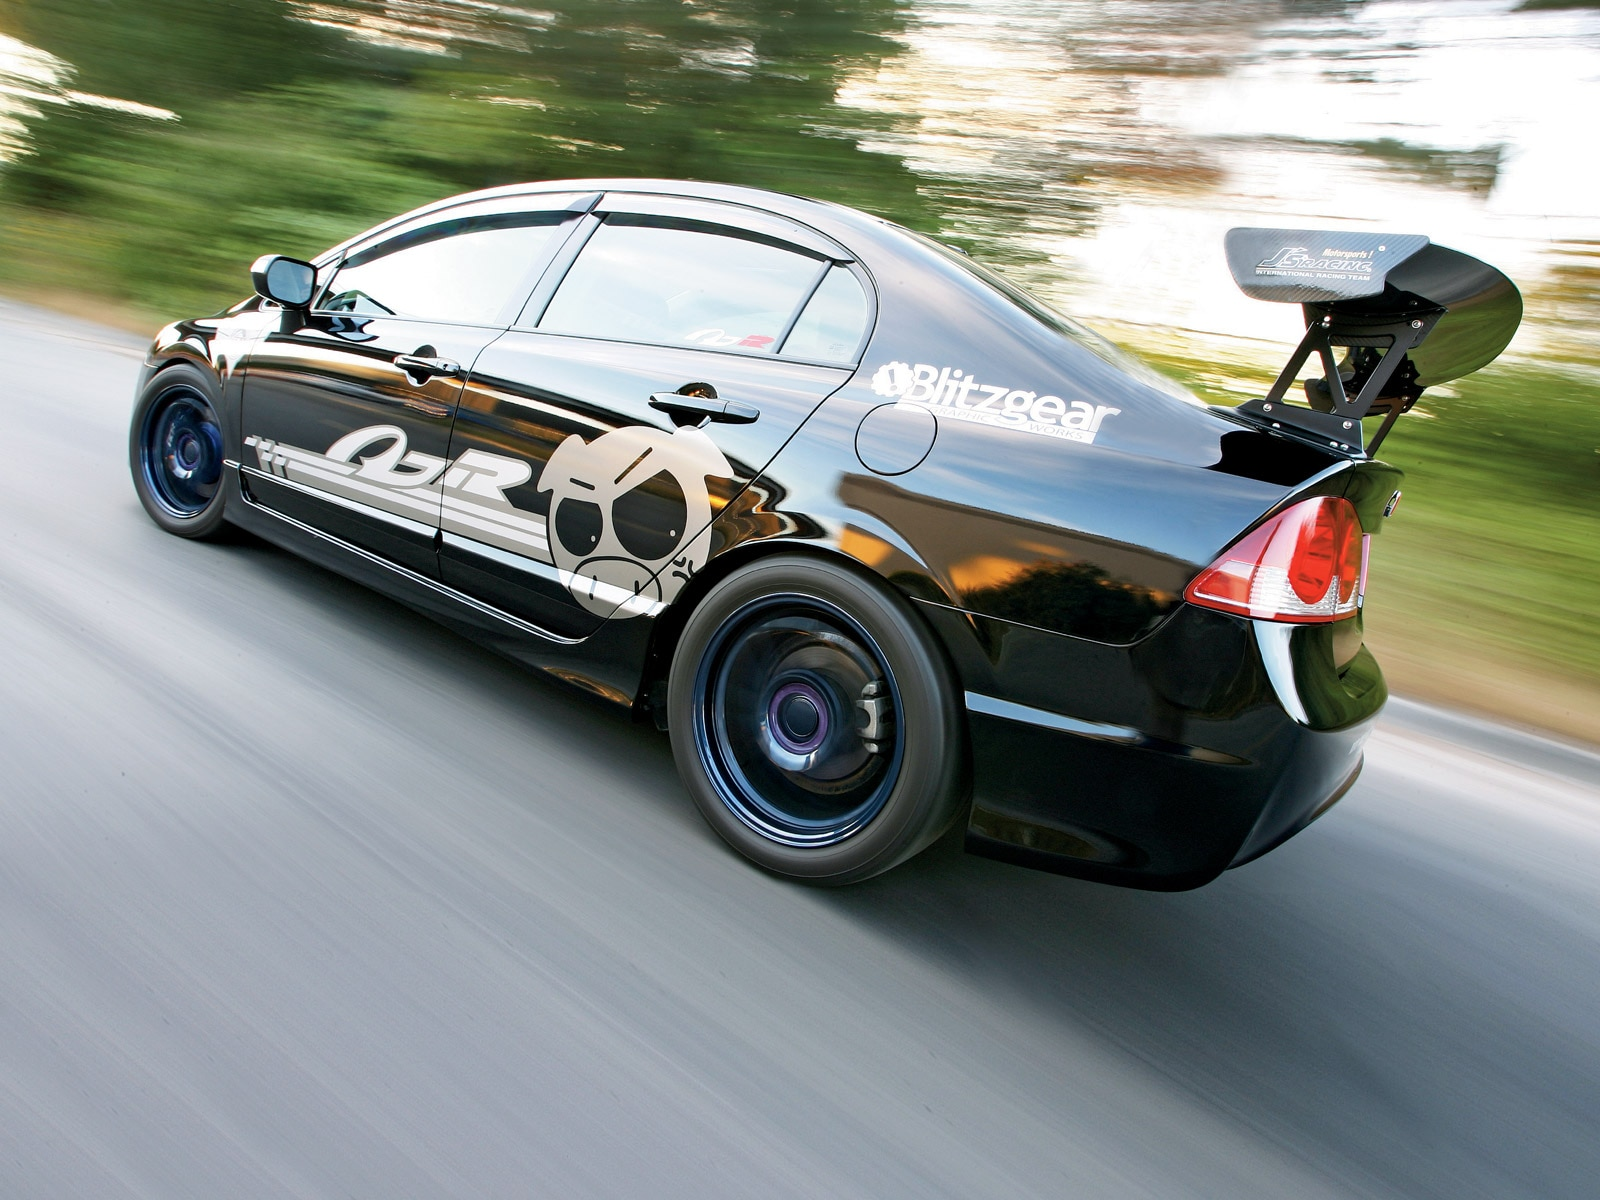 hight resolution of 2008 acura csx type s the family car alternative compromise